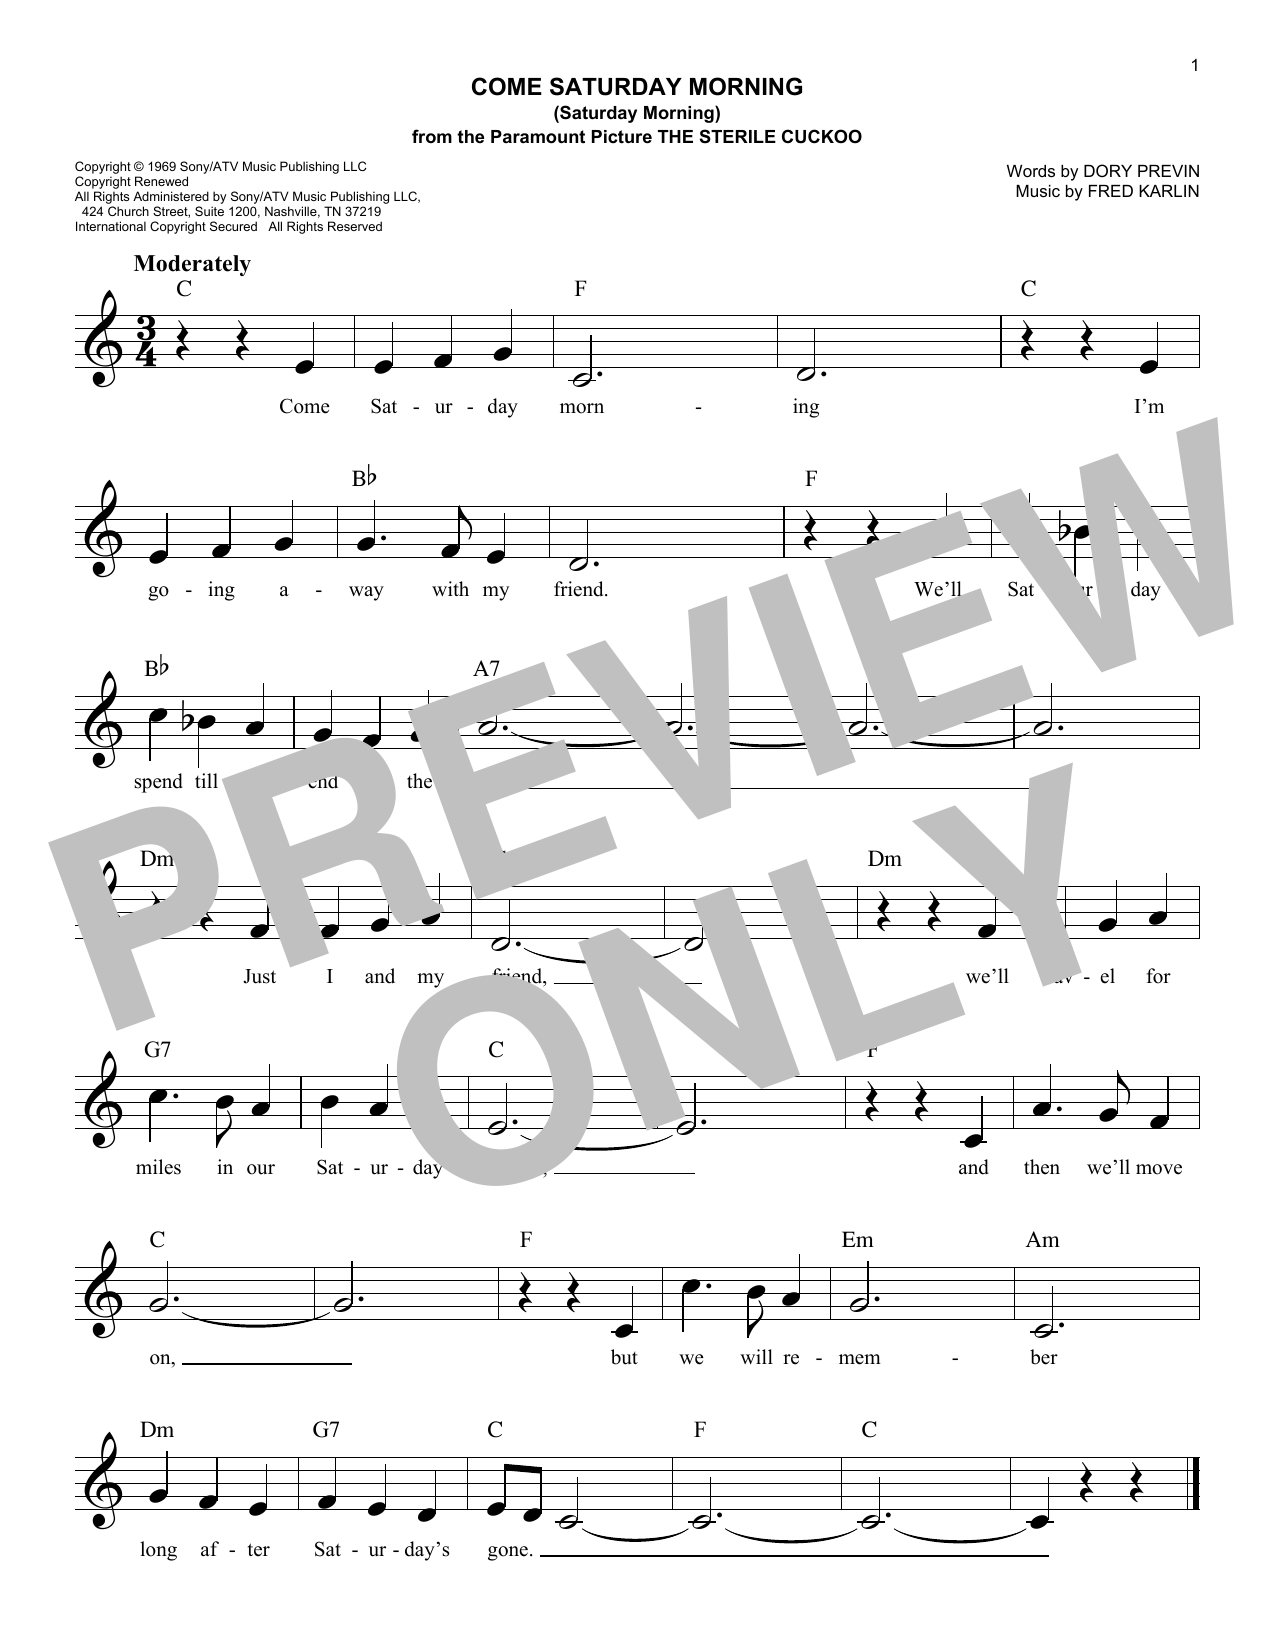 The Sandpipers Come Saturday Morning (Saturday Morning) sheet music notes and chords. Download Printable PDF.